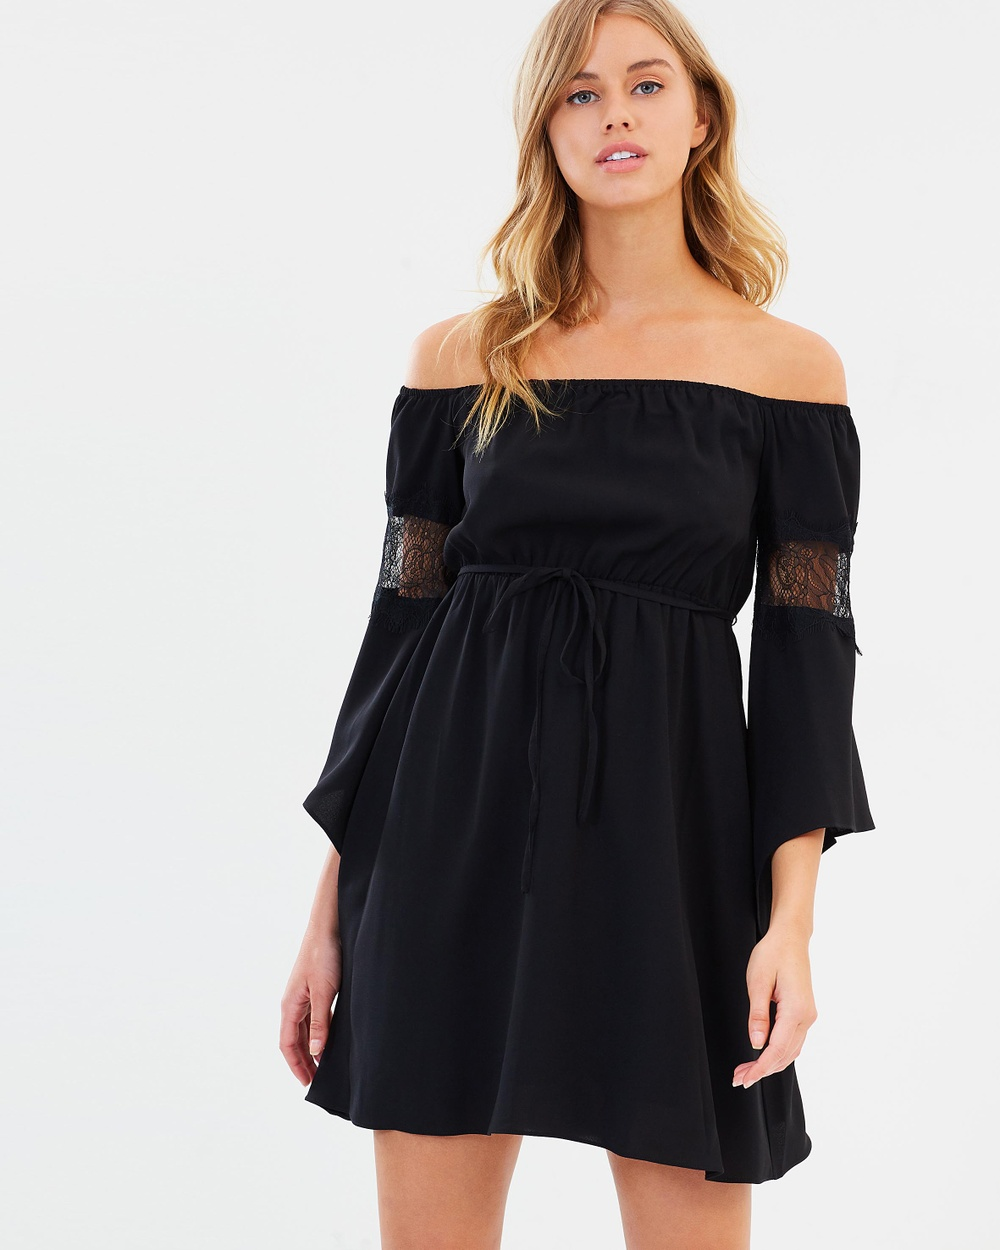 Atmos & Here ICONIC EXCLUSIVE Veda Asymmetric Dress Dresses Black ICONIC EXCLUSIVE Veda Asymmetric Dress